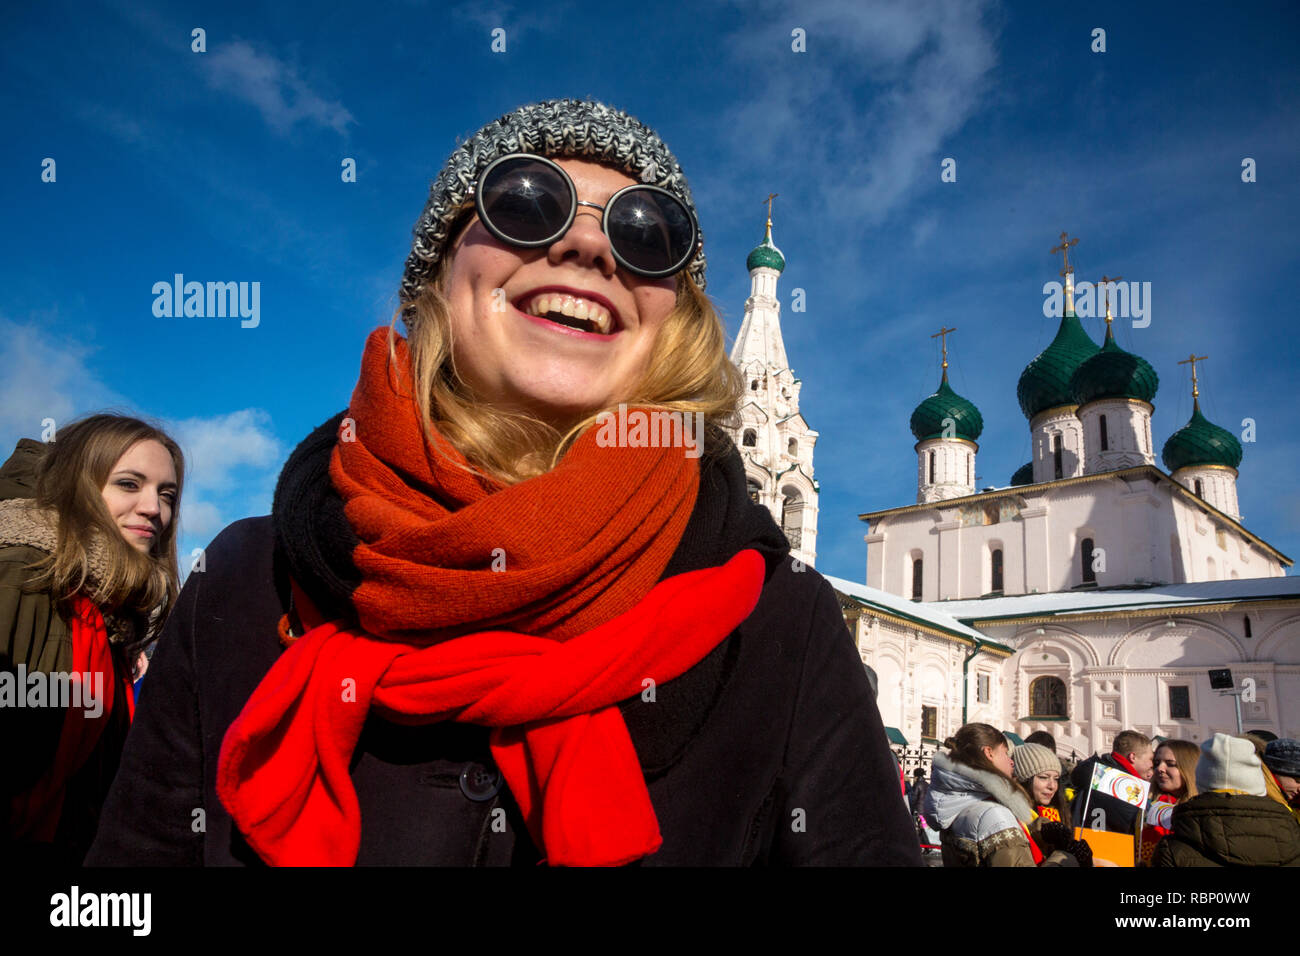 Students and youth of the city of Yaroslavl to take part in a youth flashmob during the Maslenitsa festival in city center of Yaroslavl, Russia - Stock Image